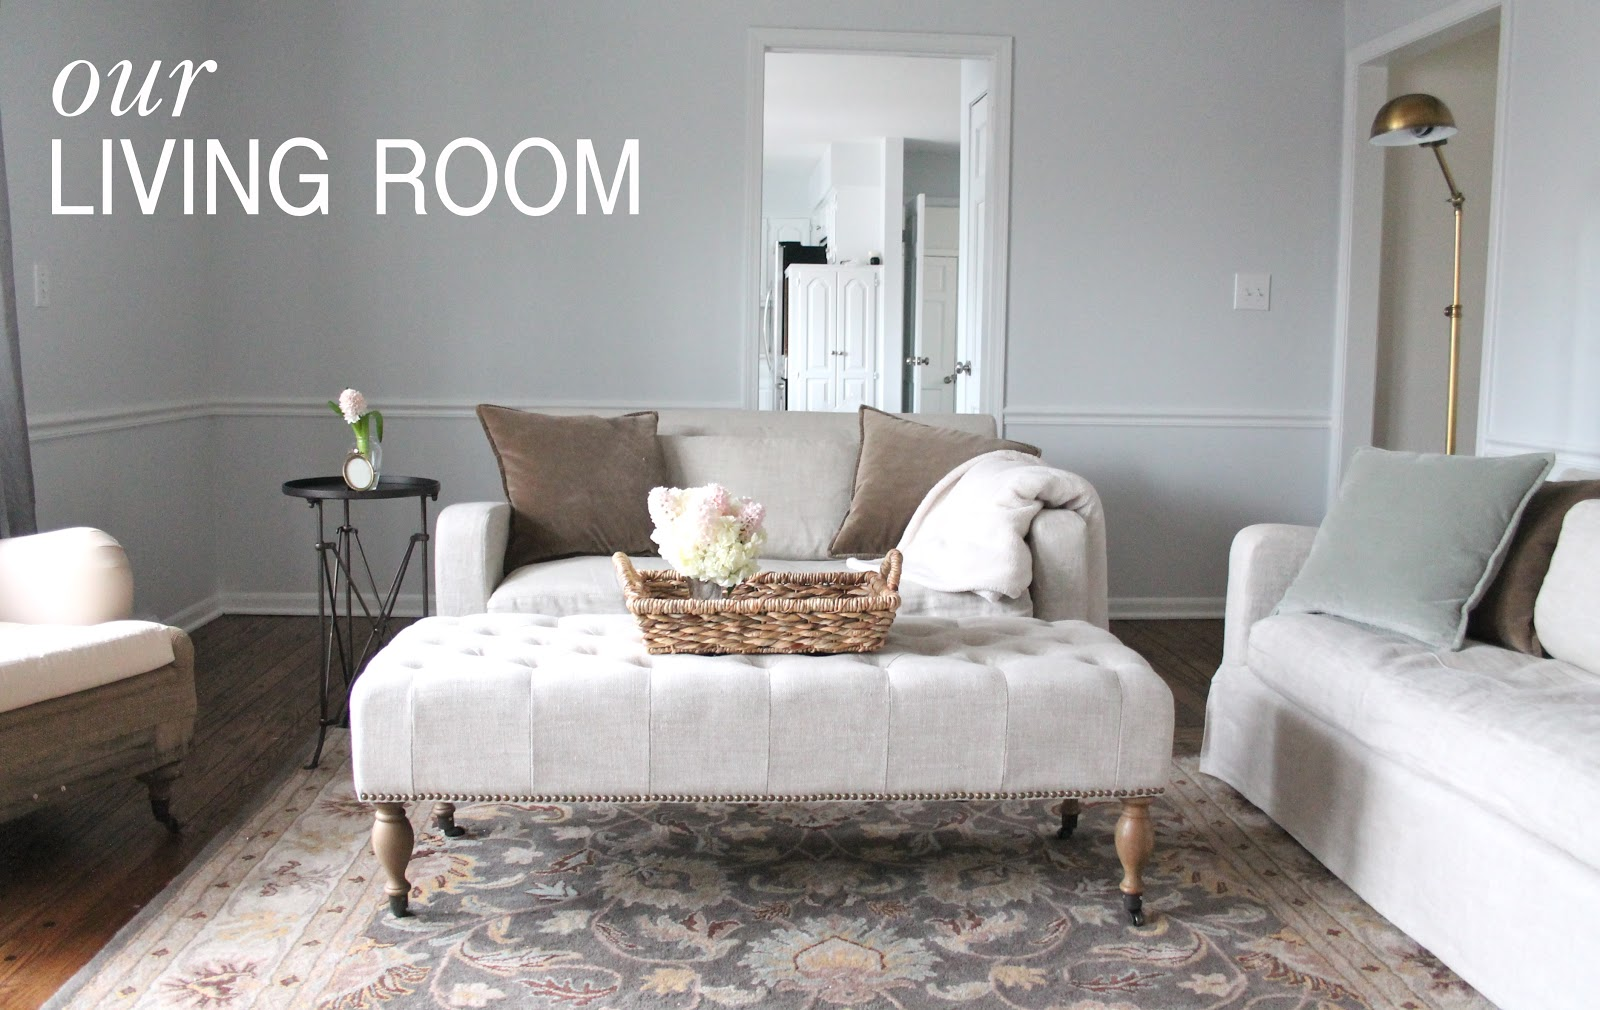 Our Living Room - Coordinately Yours by Julie Blanner entertaining